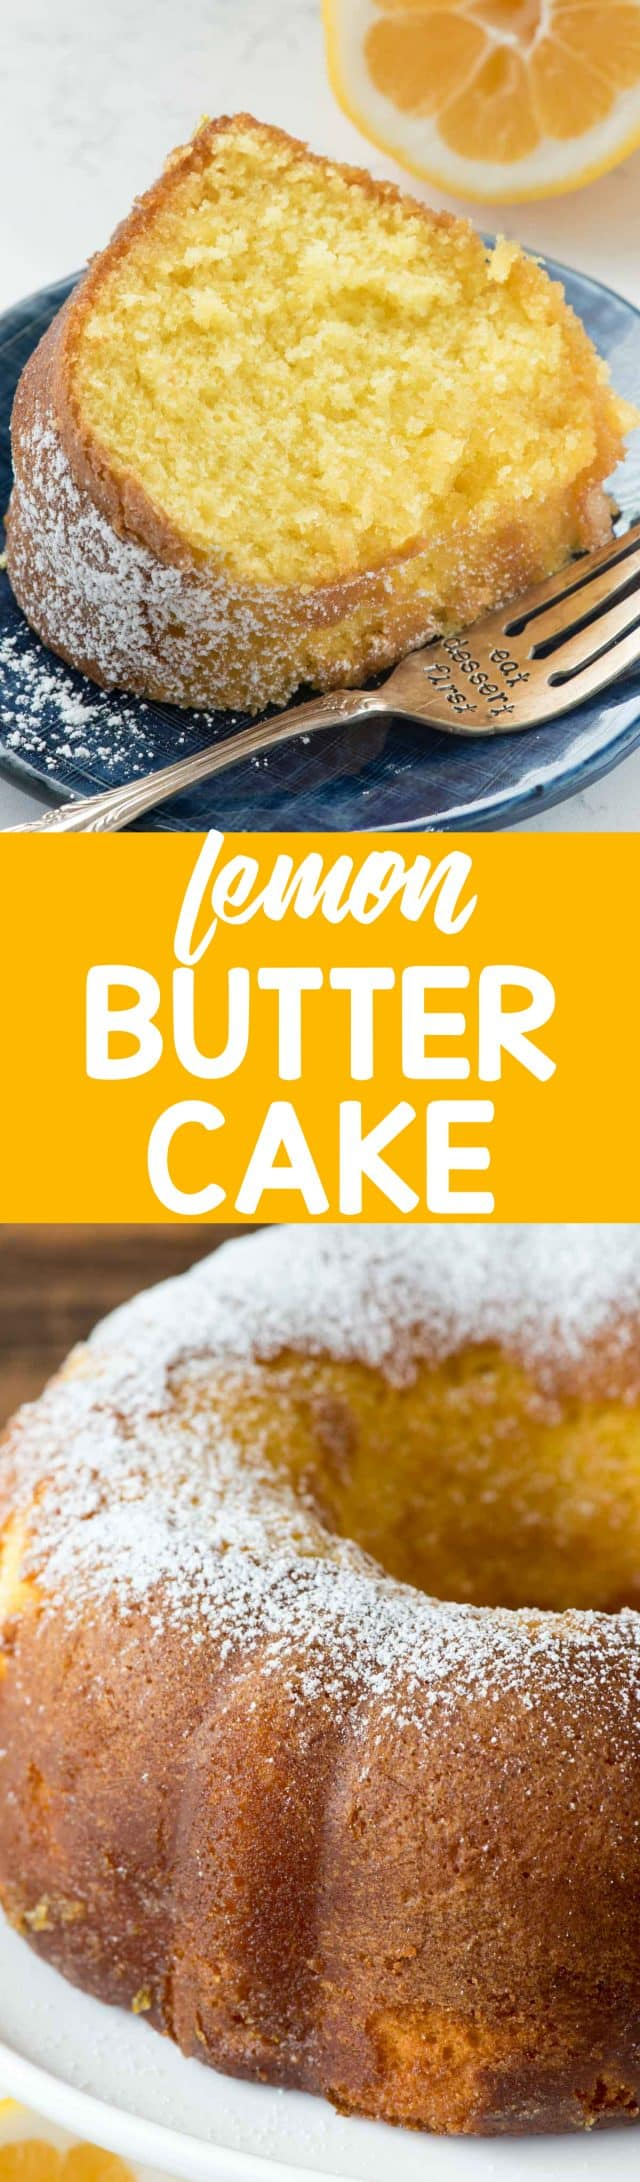 Easy Lemon Butter Cake collage photo of slice and cake